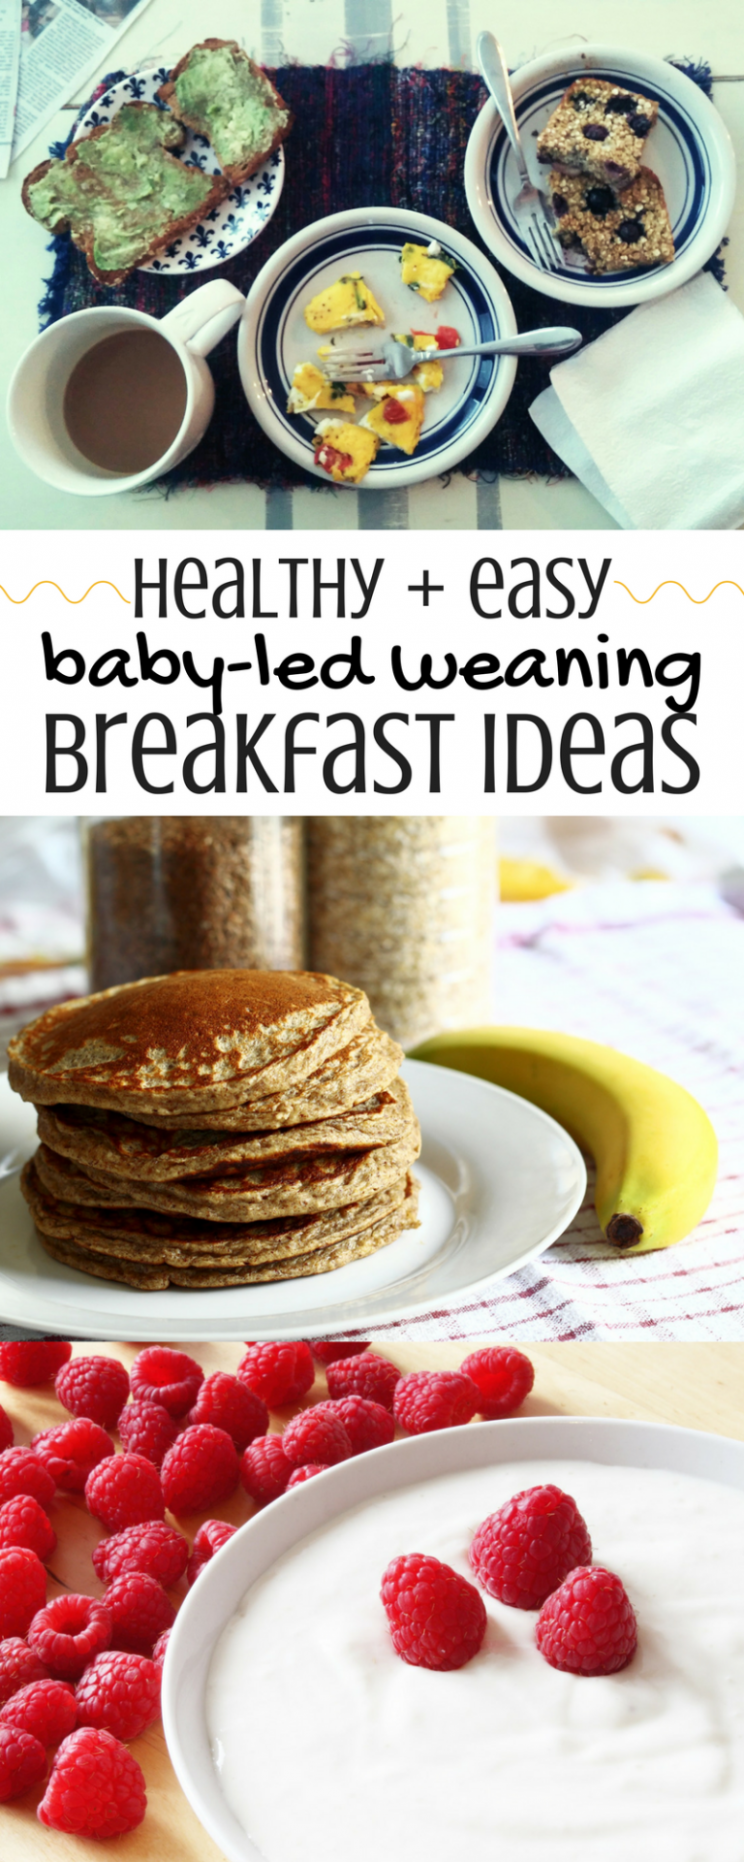 Baby-Led Weaning Breakfast Ideas | Baby led weaning breakfast ..